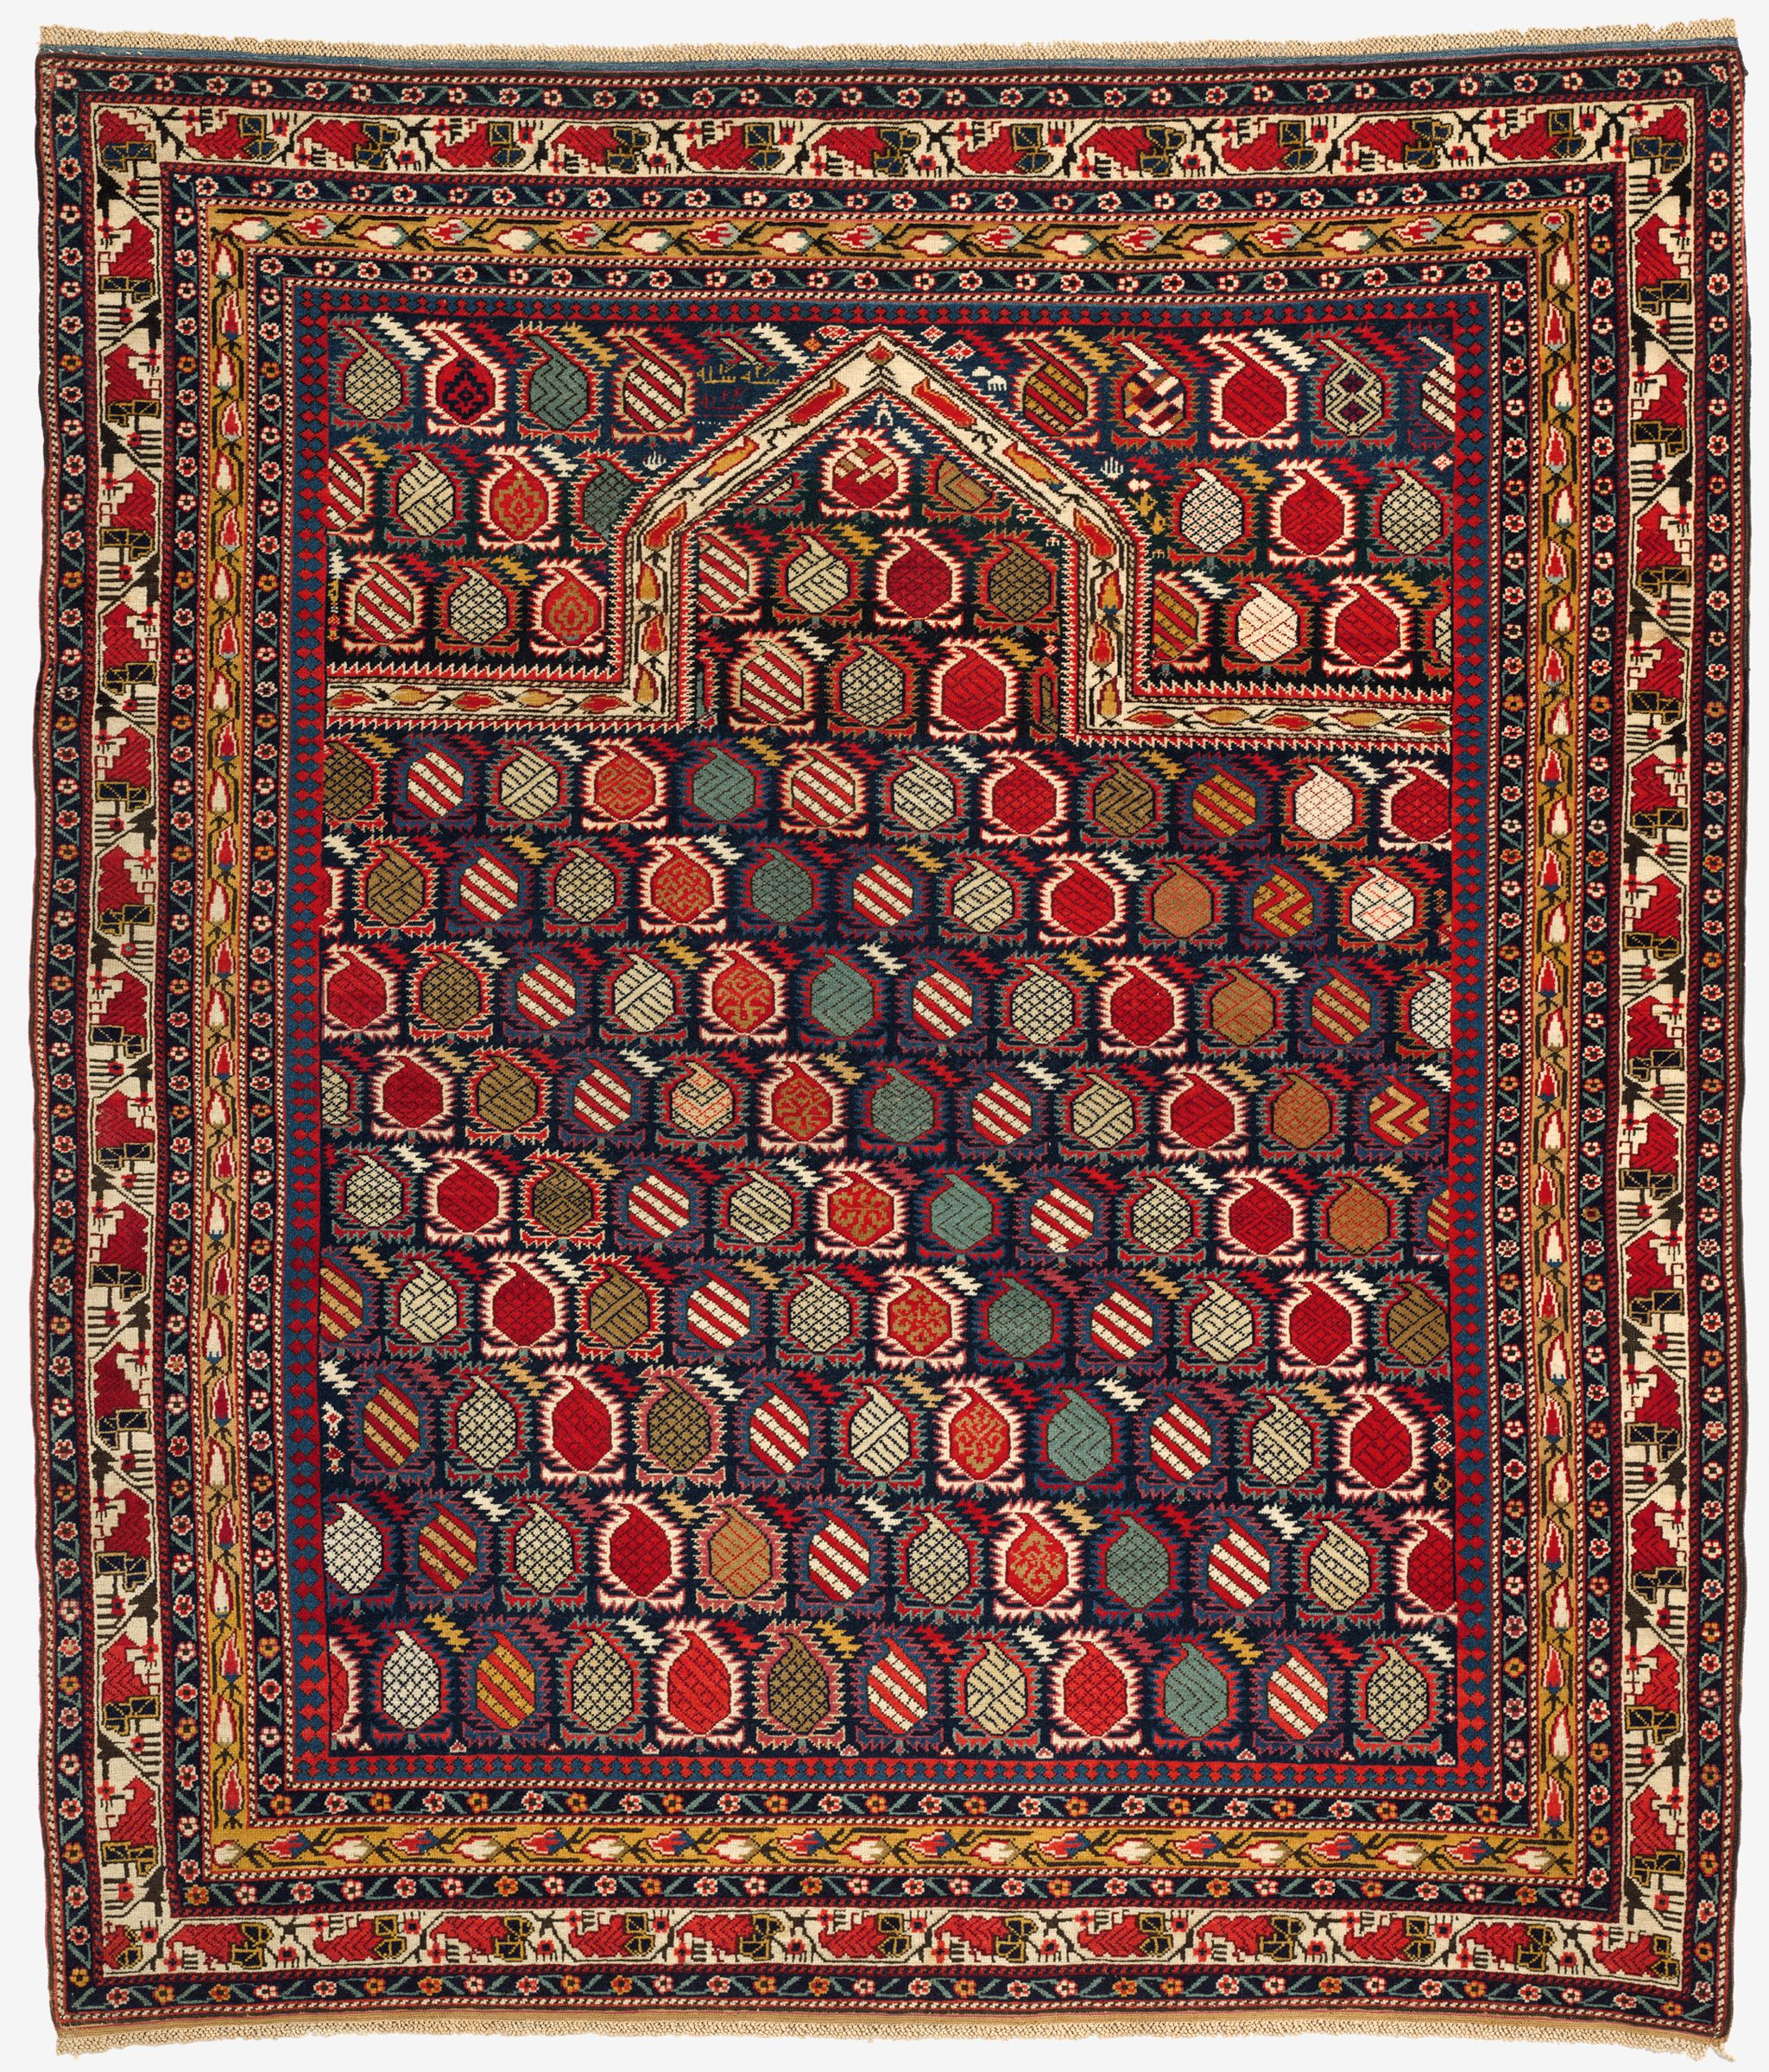 Prayer Rug Types: From The Harvard Art Museums' Collections Prayer Carpet